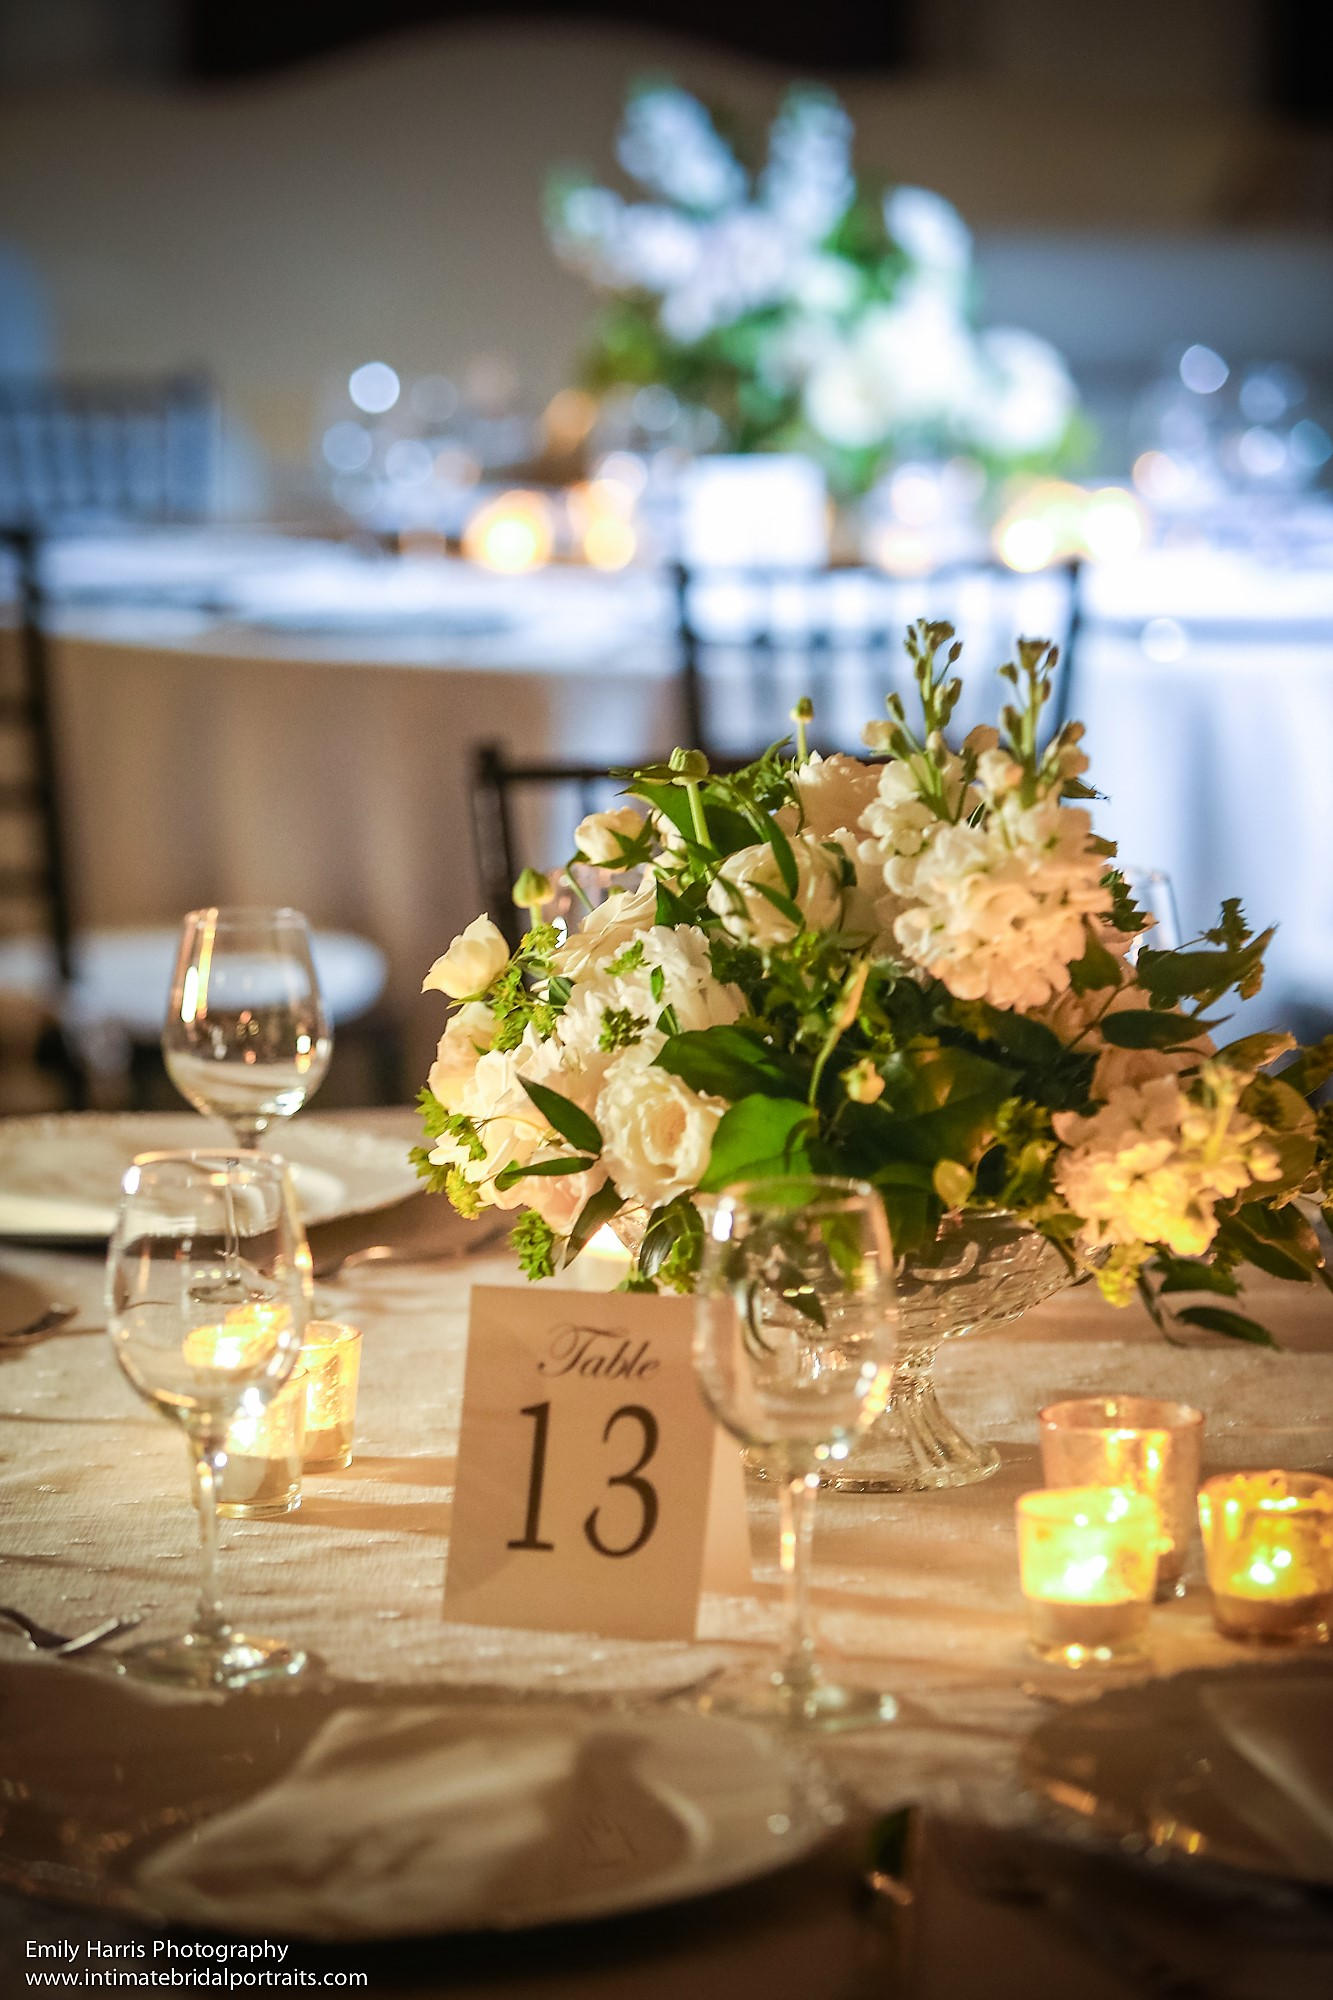 Classic and romantic all-white wedding décor at The Bath Club